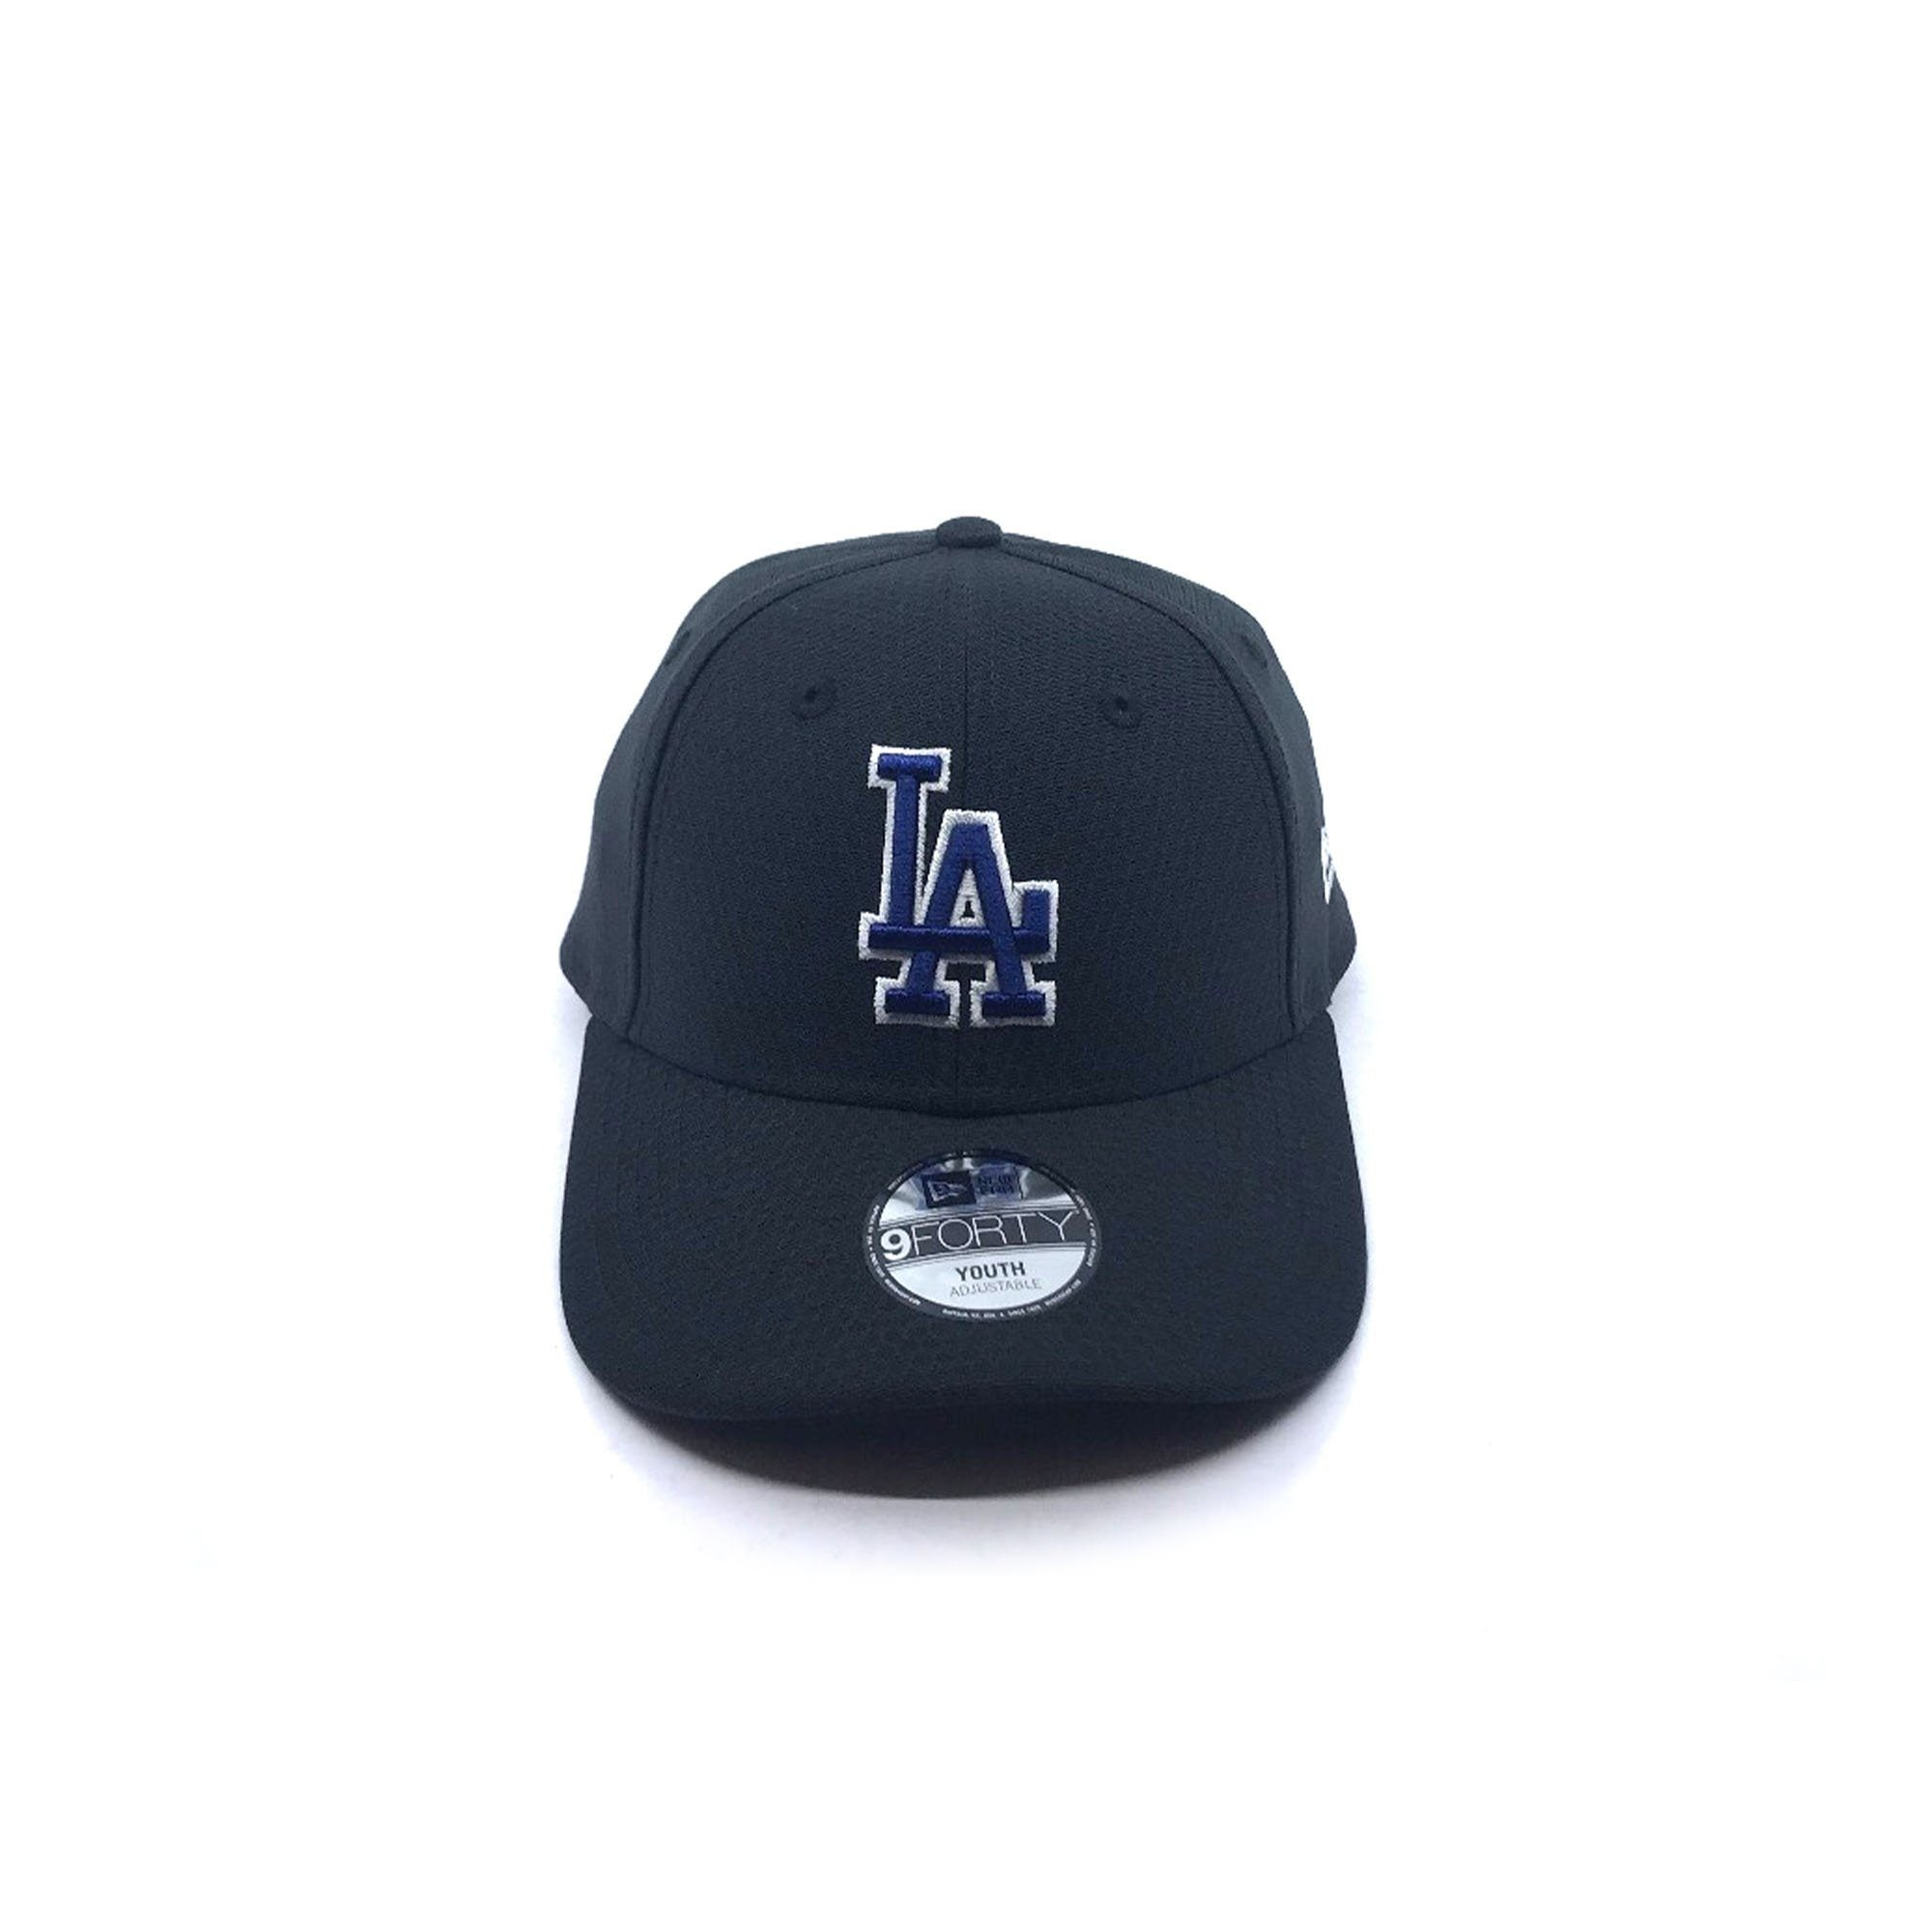 New Era Youth 9FORTY Snapback - Los Angeles Dodgers - Black Hex SP-Headwear-Caps New Era